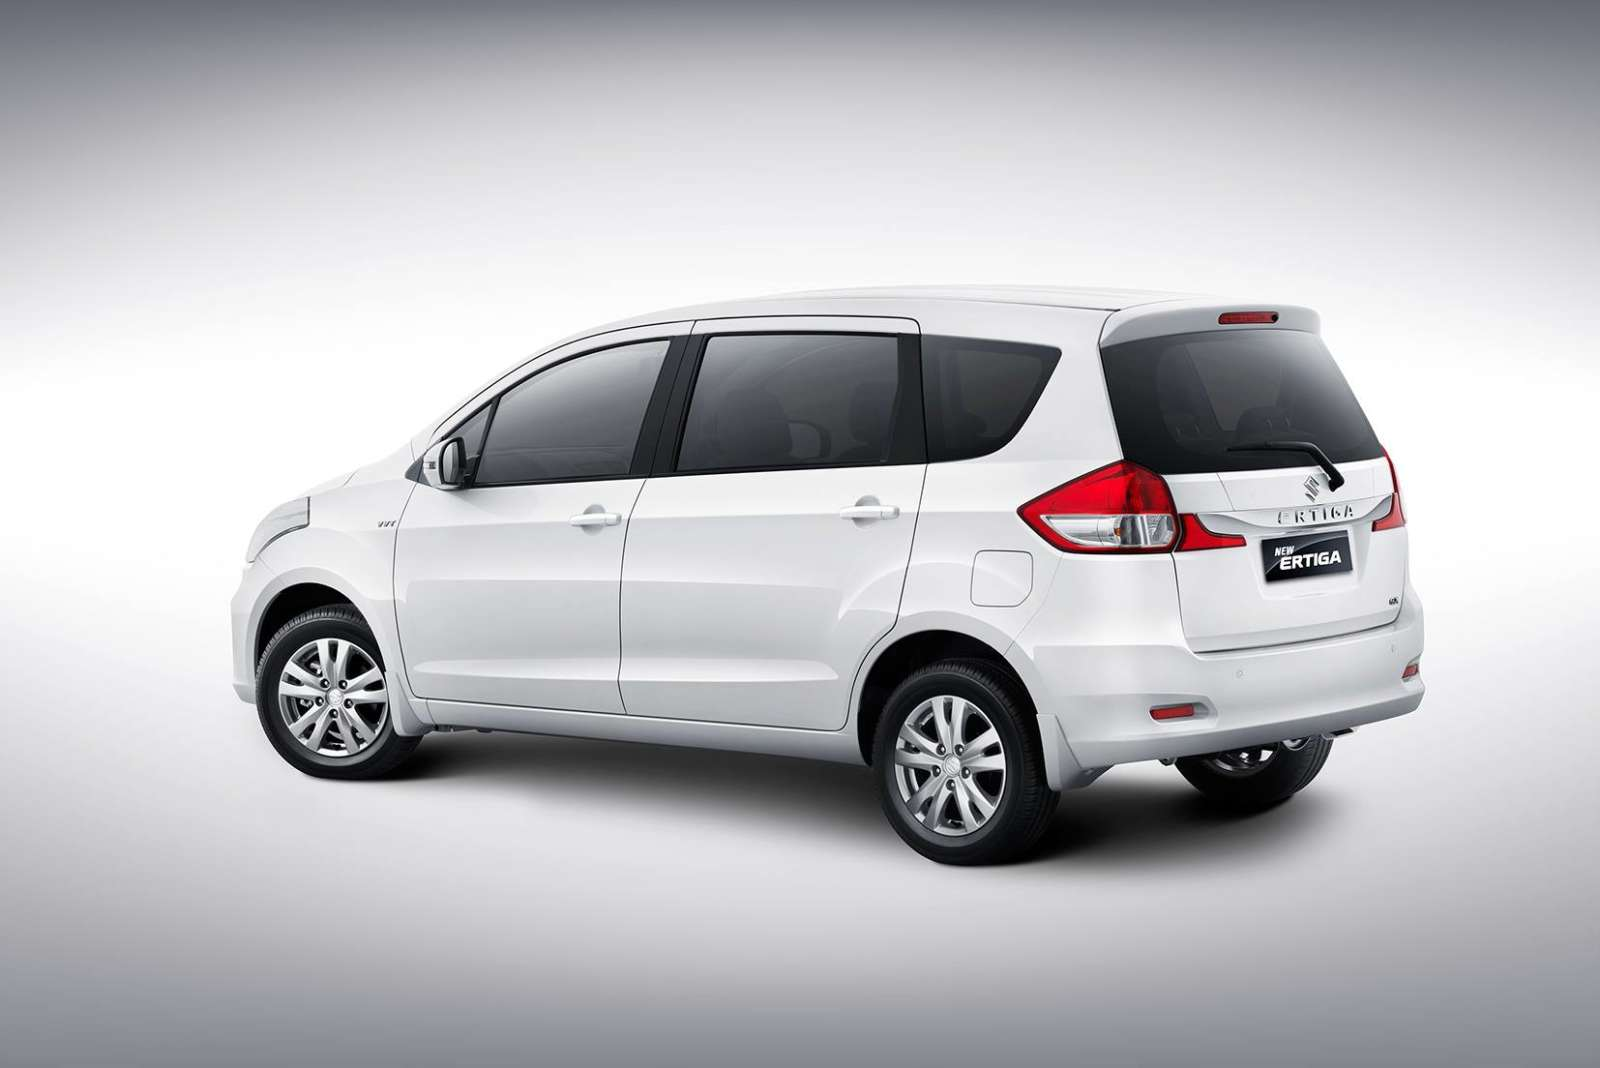 2015 Suzuki Ertiga (Maruti Ertiga Facelift) Revealed In